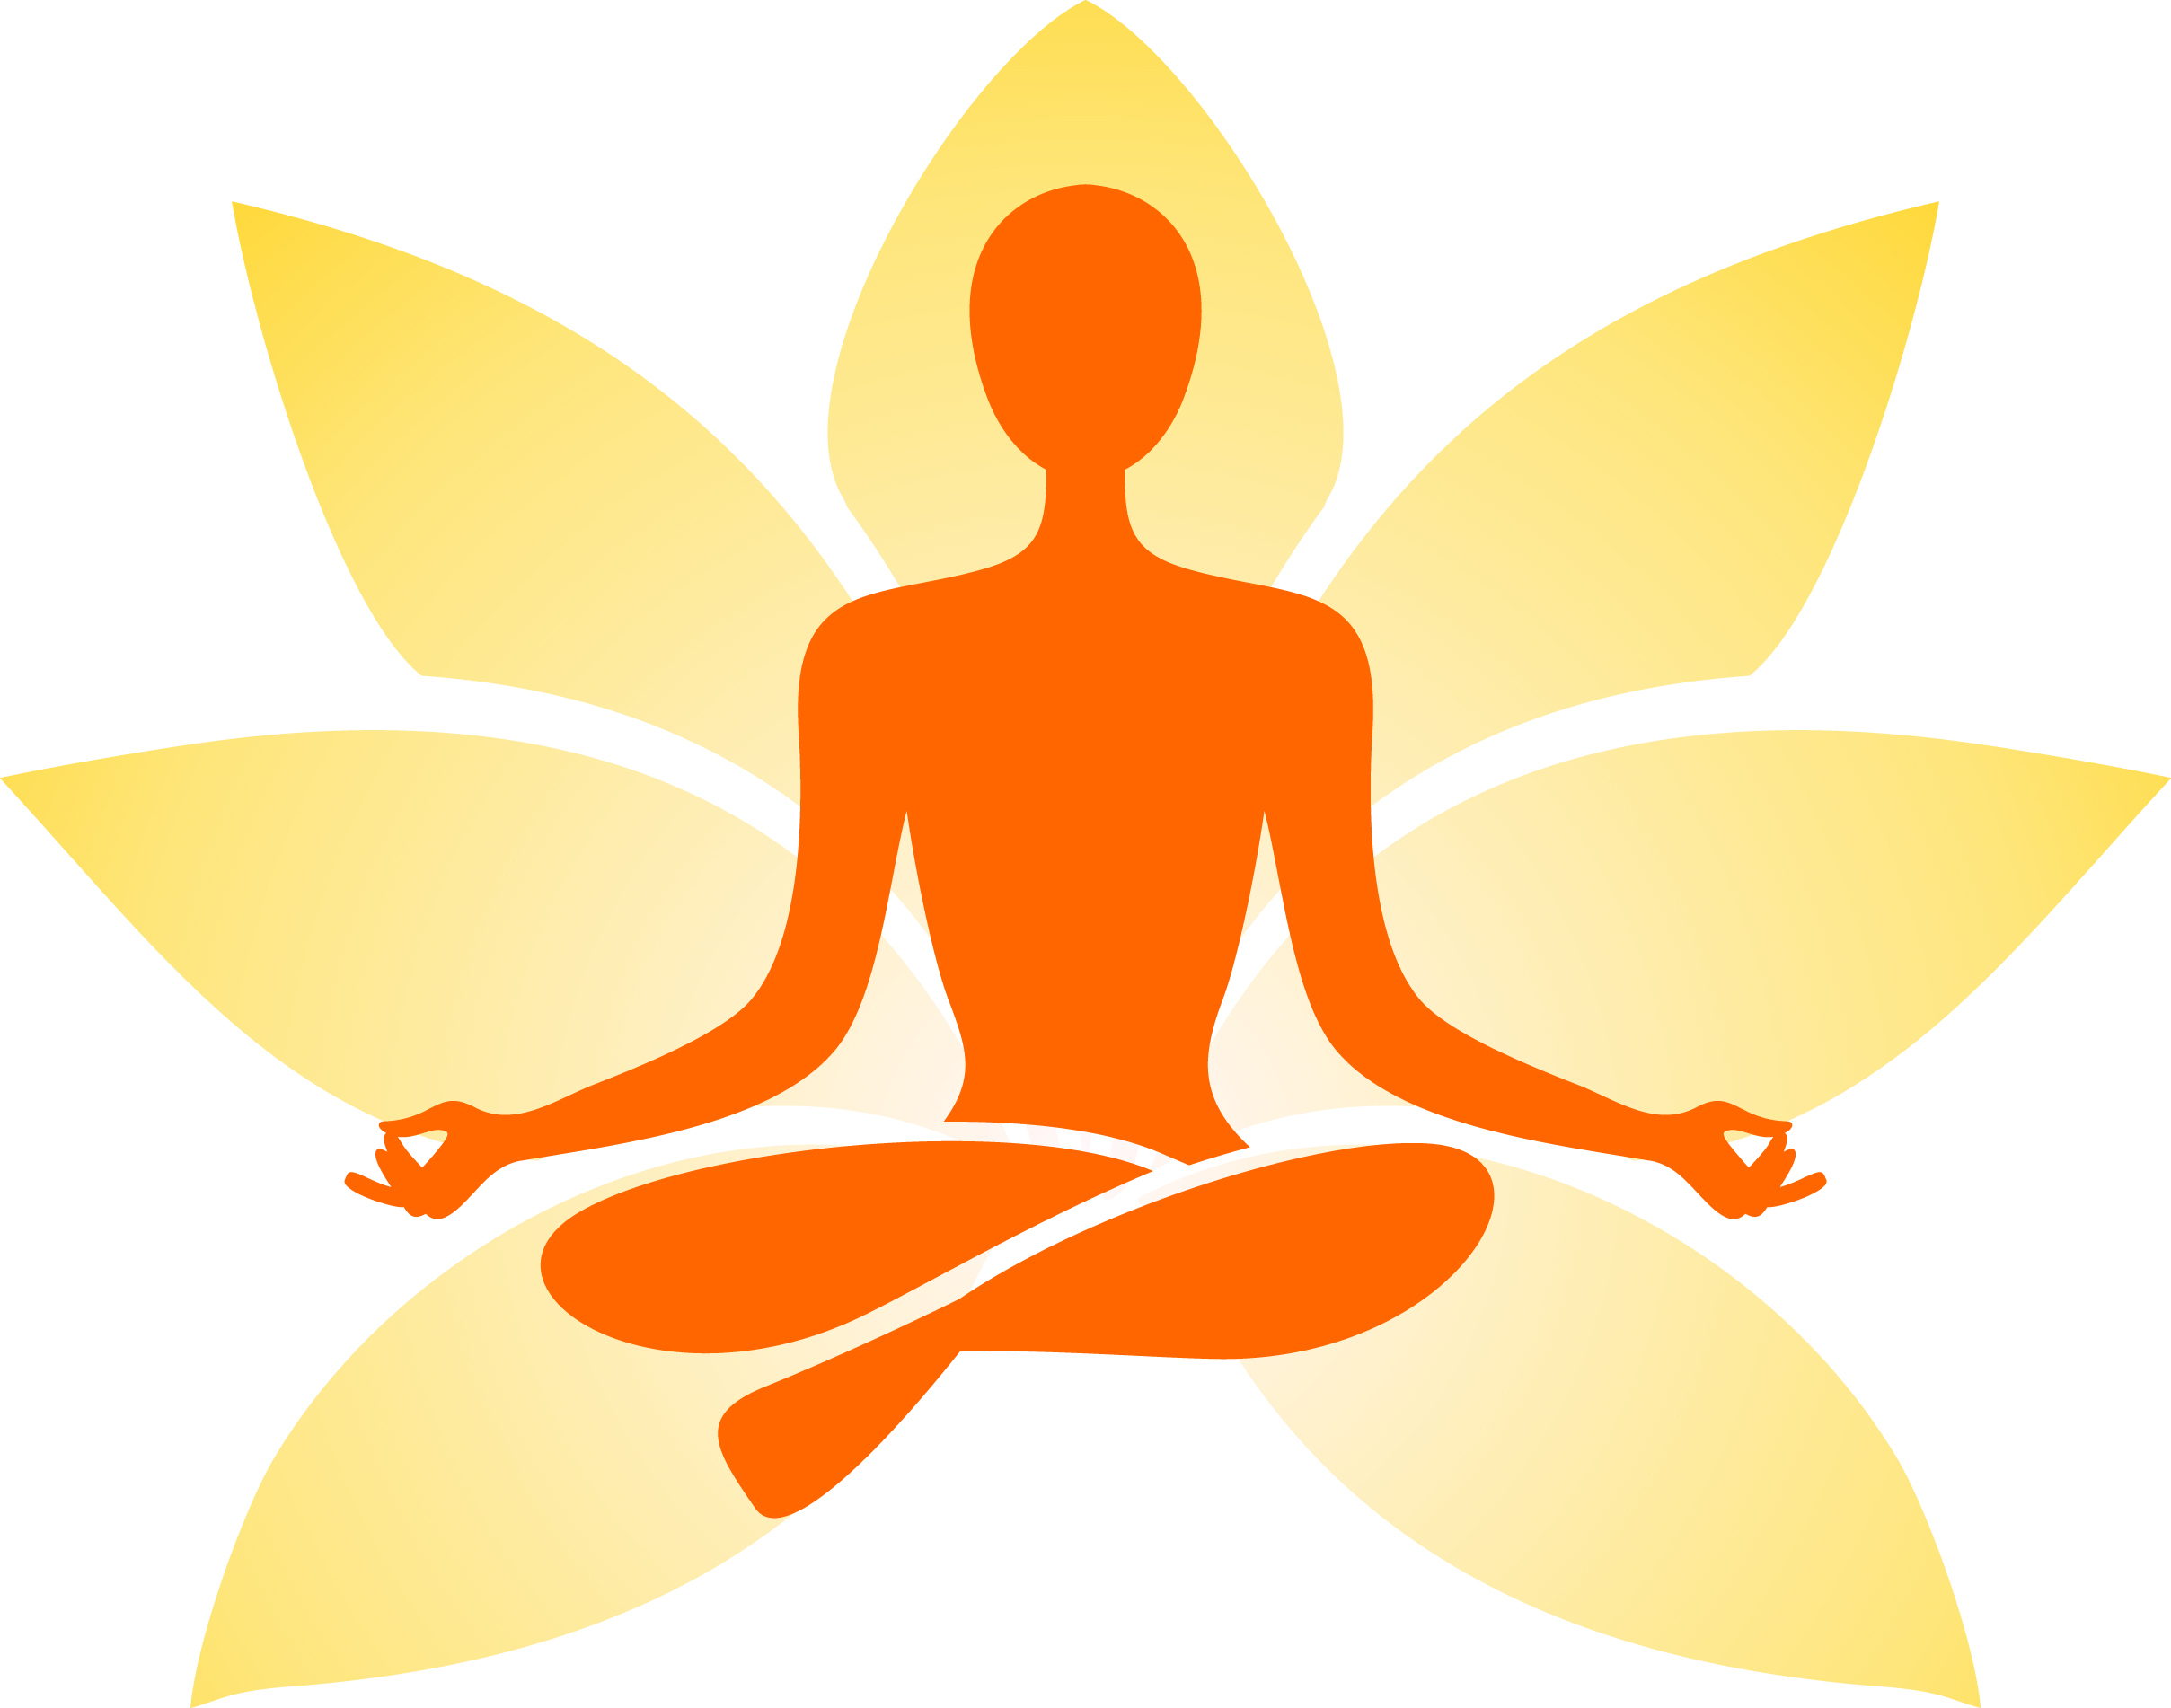 Orange and yellow lotus with orange outline of a person in lotus pose